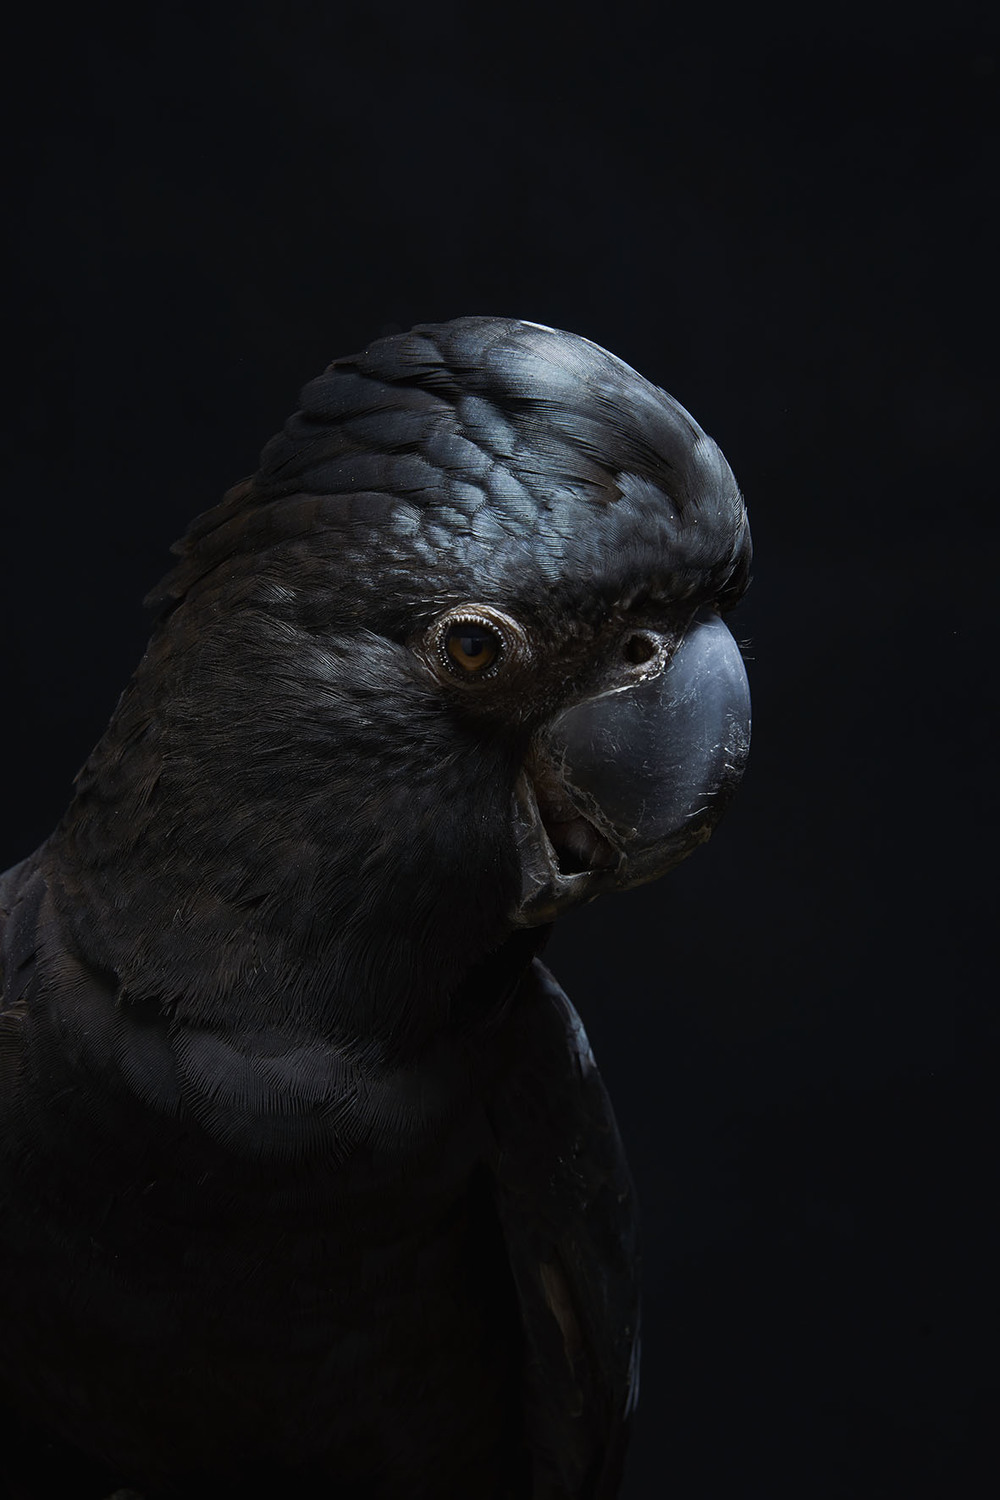 Cockatoo_Redtailed_Black_M_048.jpg